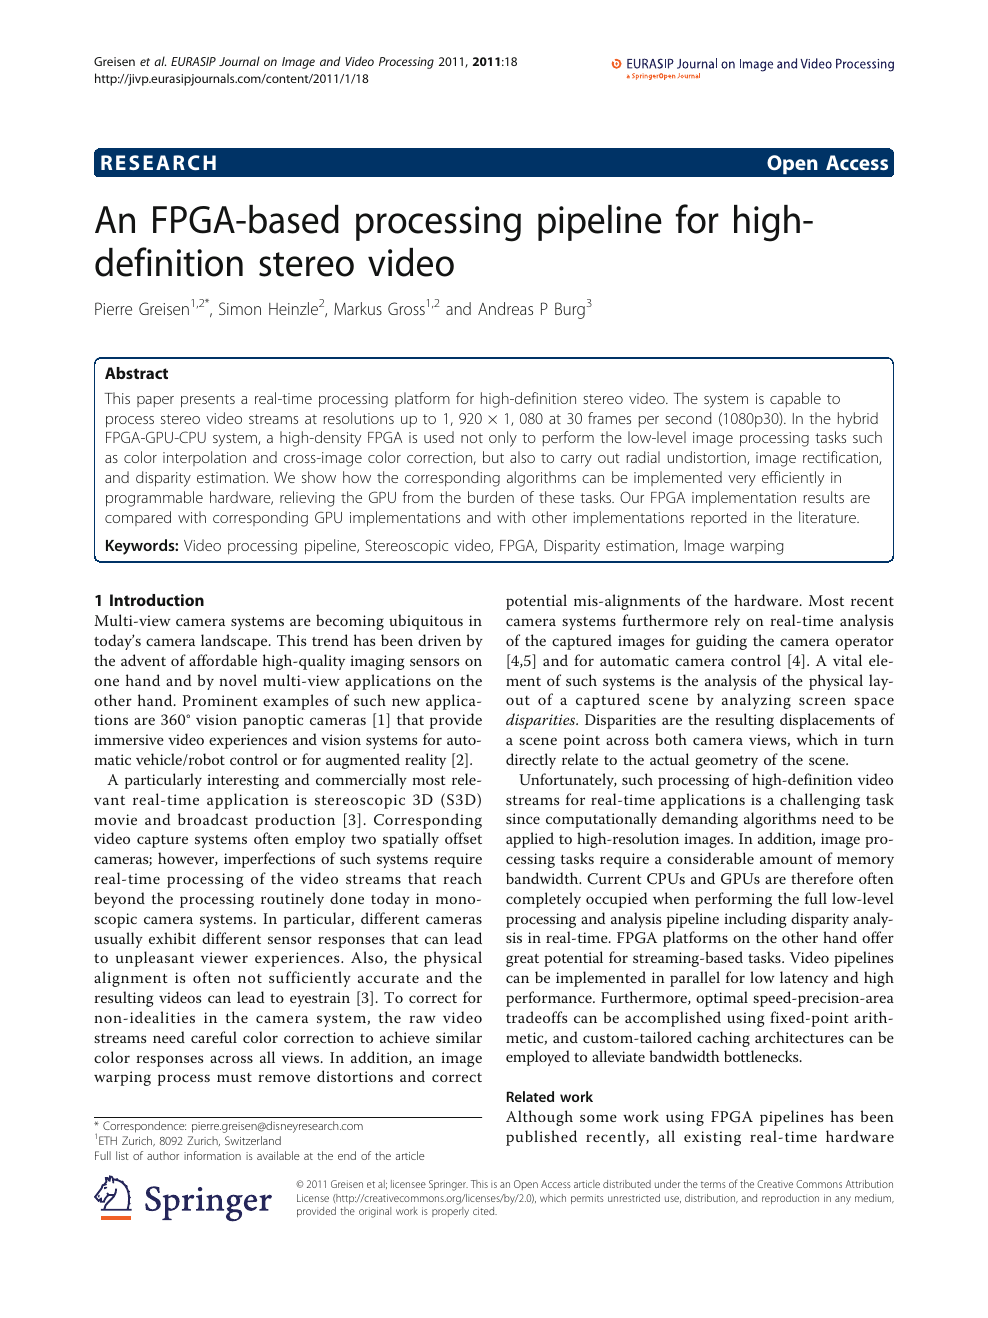 An FPGA-based processing pipeline for high-definition stereo